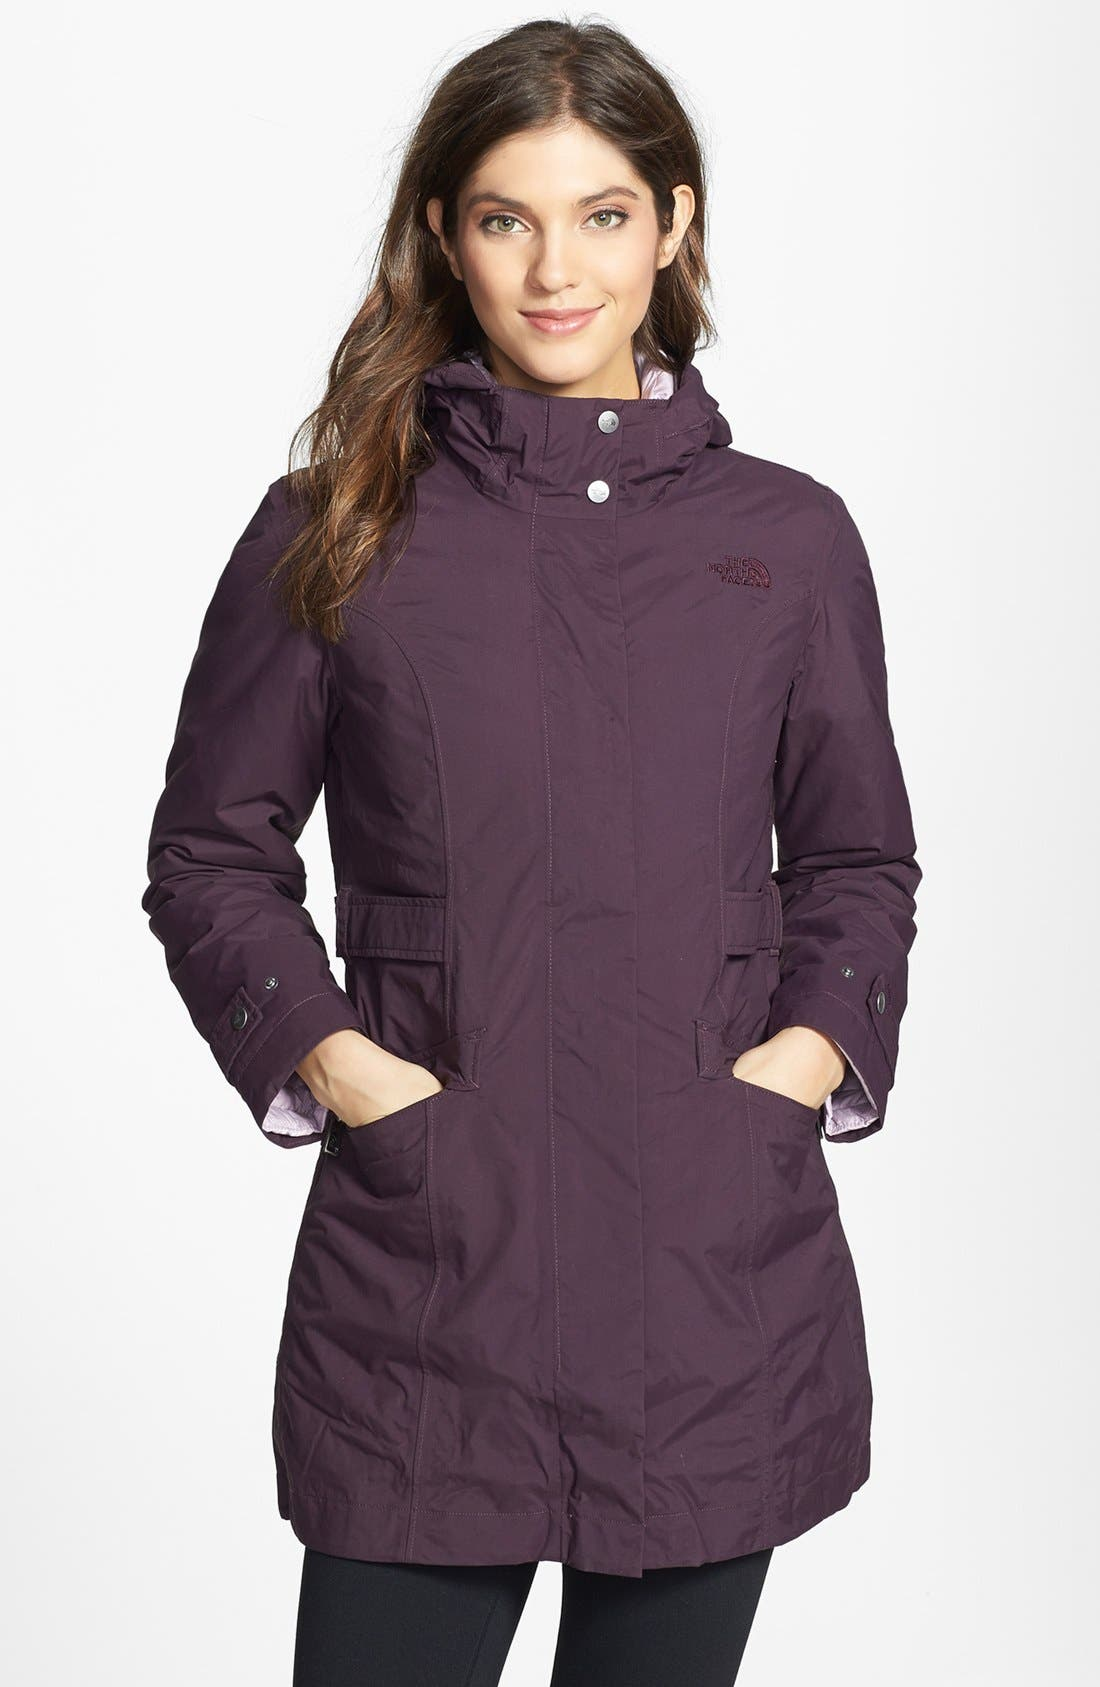 Alternate Image 1 Selected - The North Face 'Laney' TriClimate® 3-in-1 Jacket